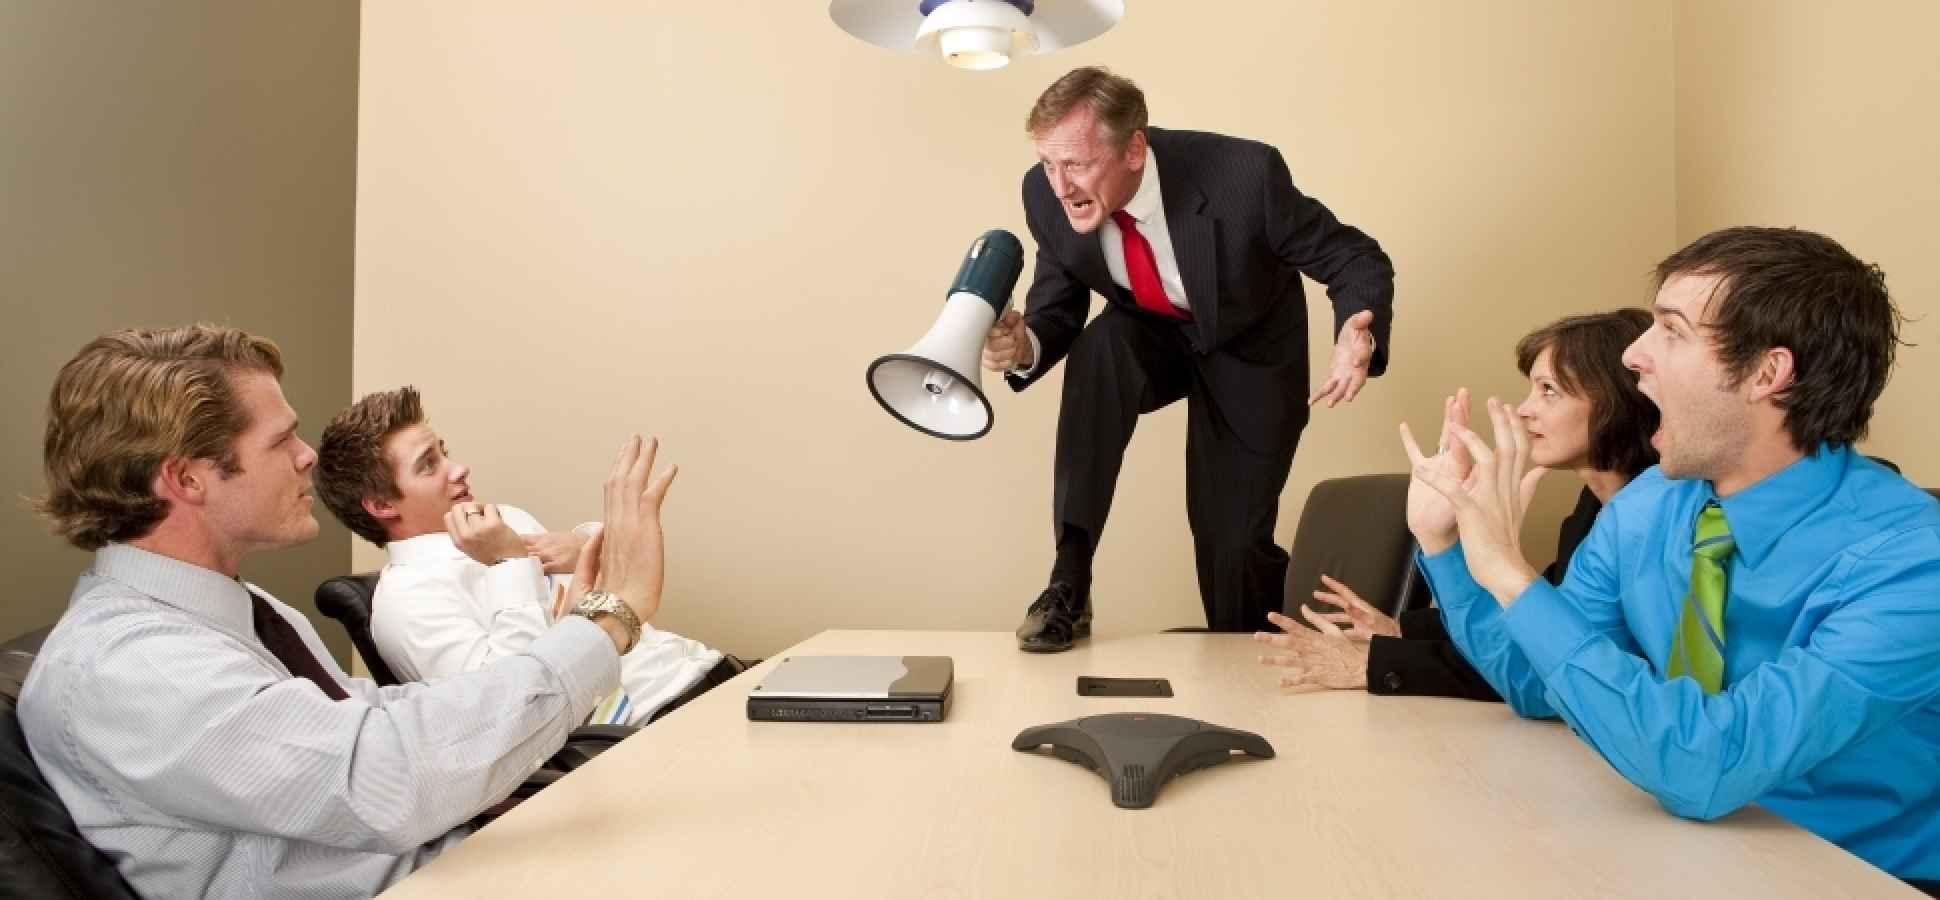 3 Toxic Things Great Leaders Never Say